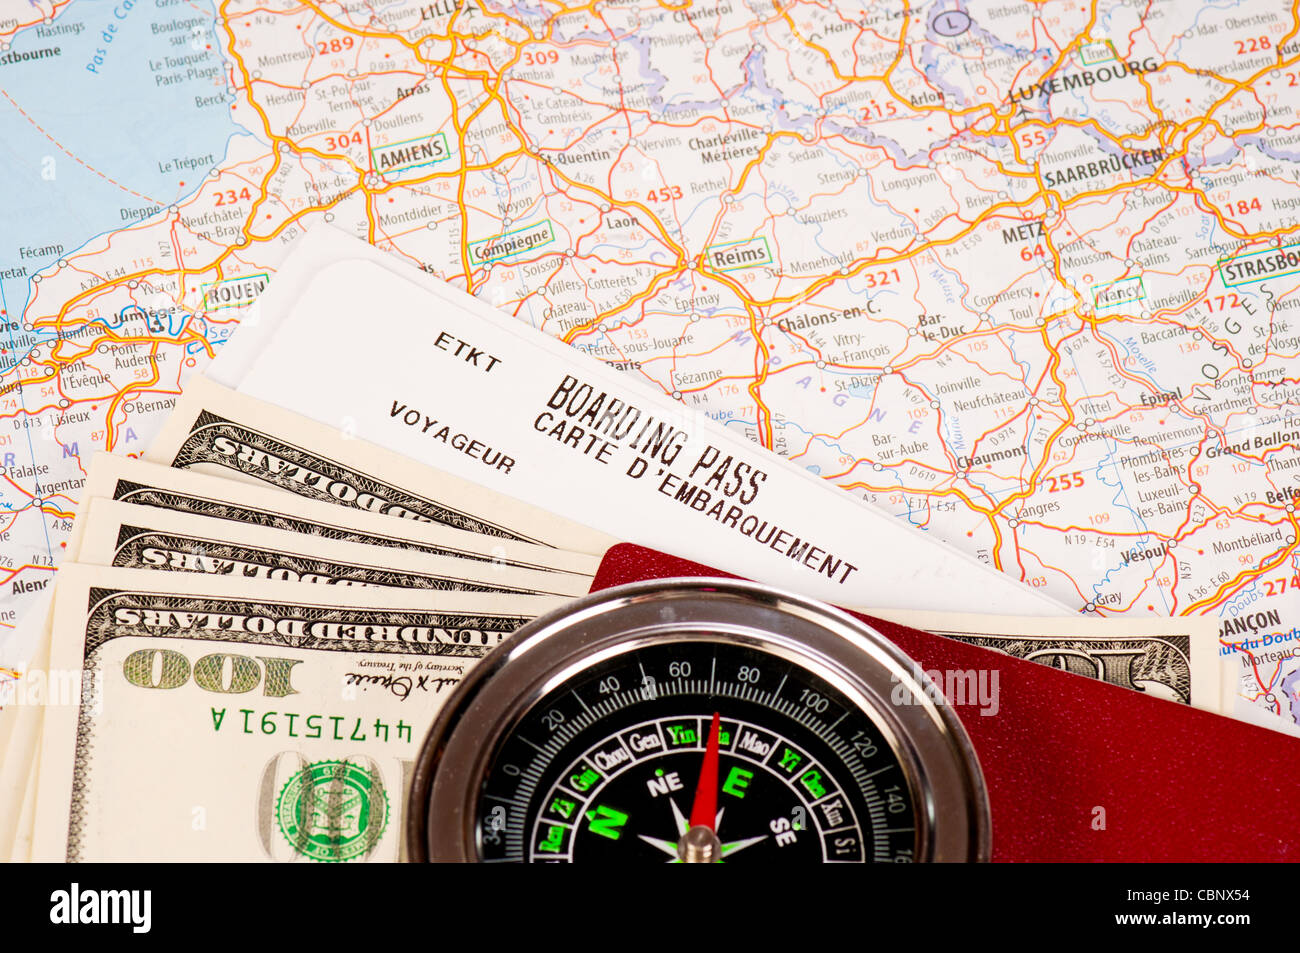 compass, money and passport with boarding pass - Stock Image